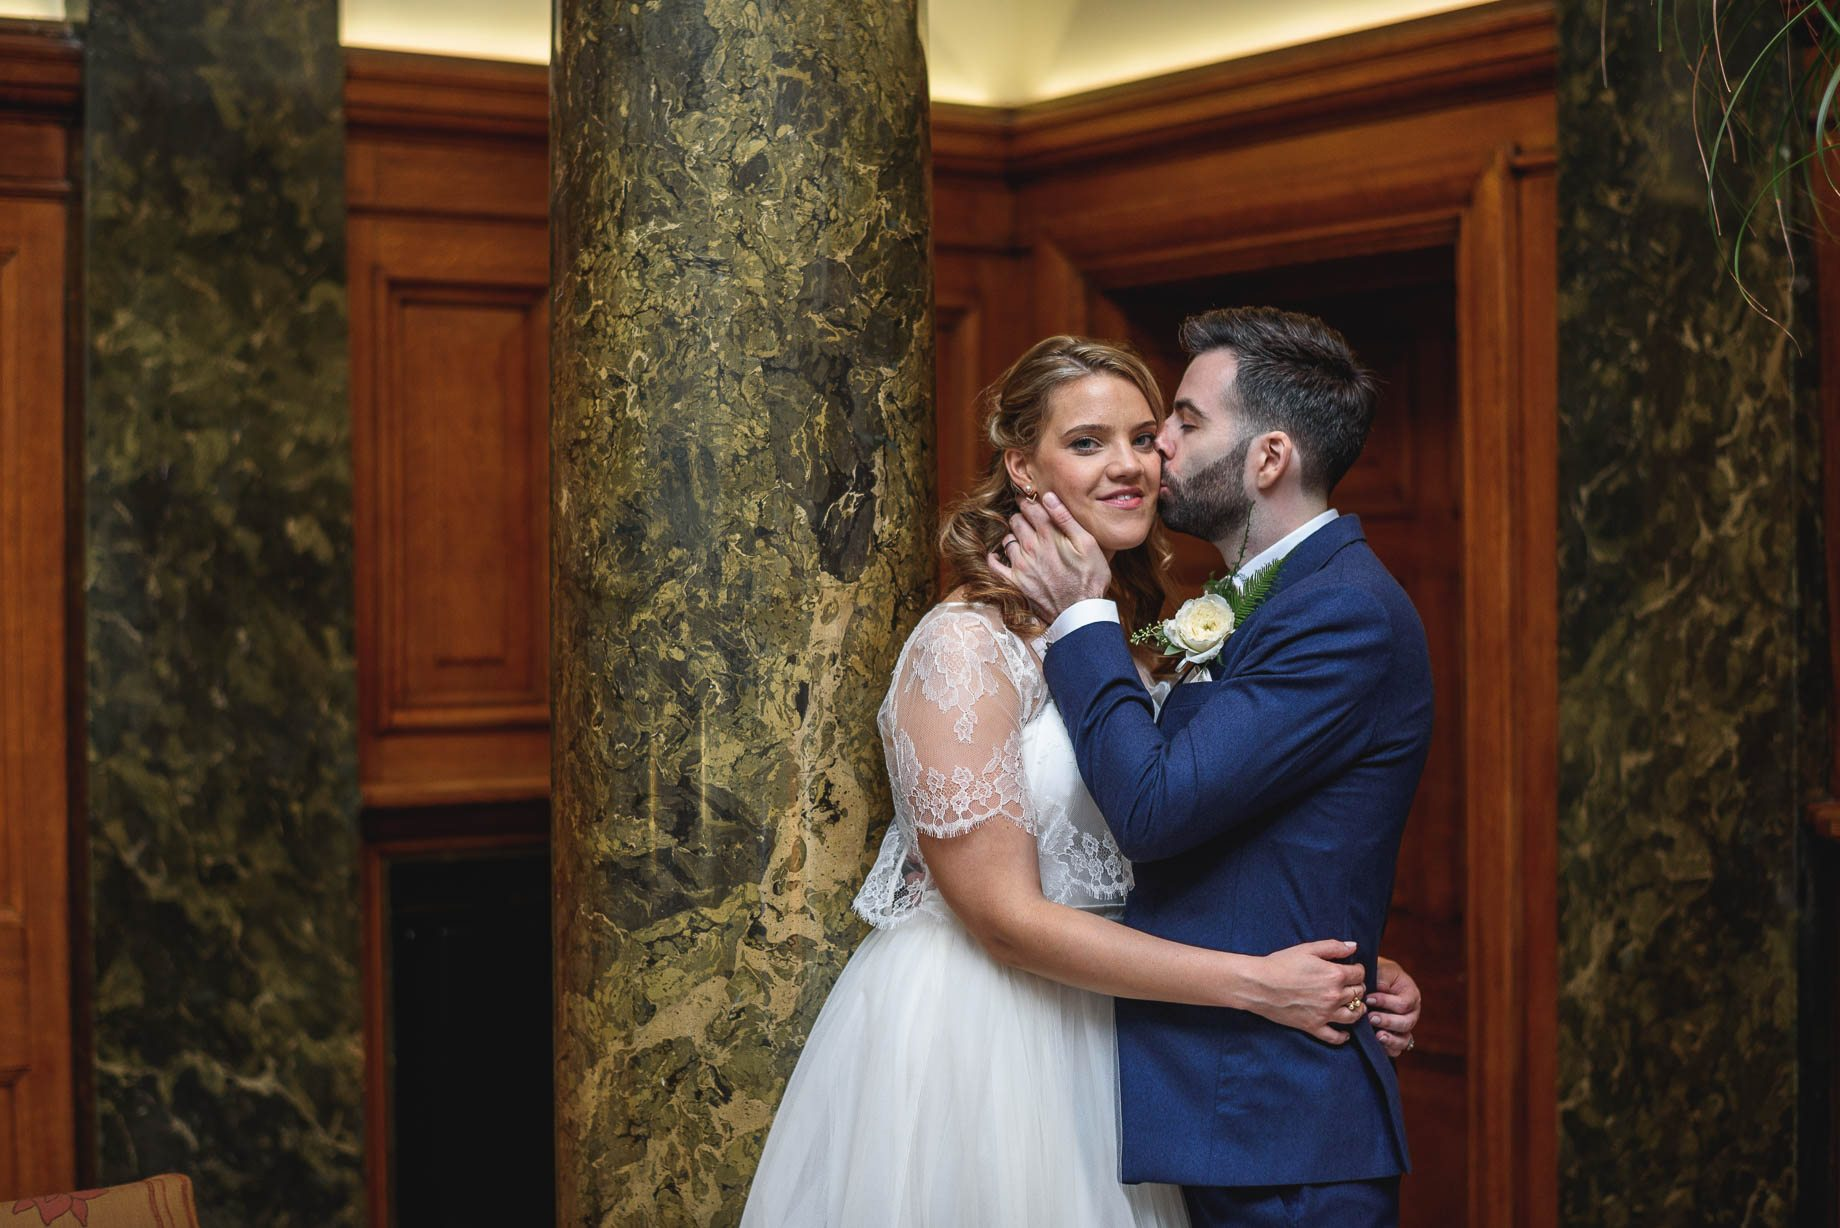 London Wedding Photography - Guy Collier Photography - LJ + Russell (88 of 155)